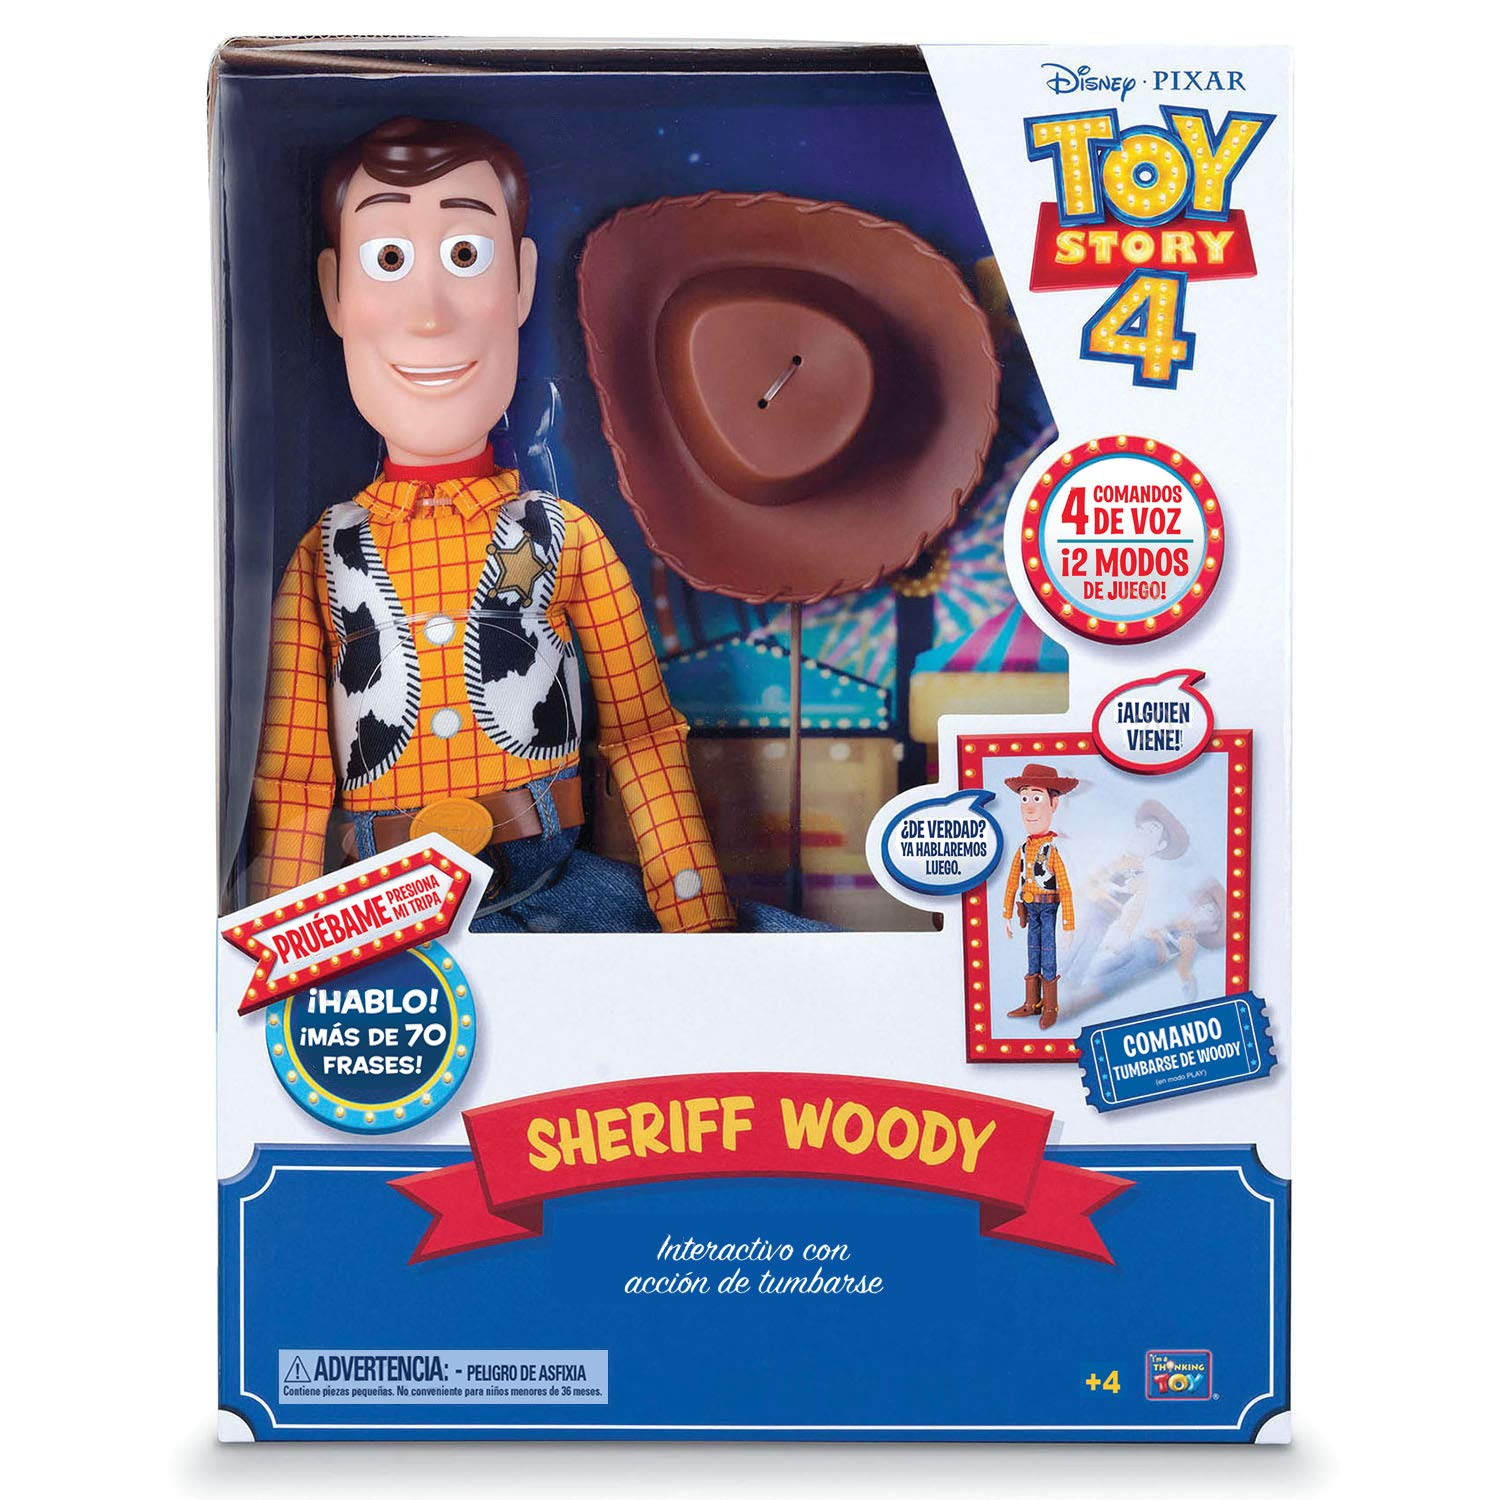 Toy Story- Woody Super Interaktiv (Bizak 61234431)